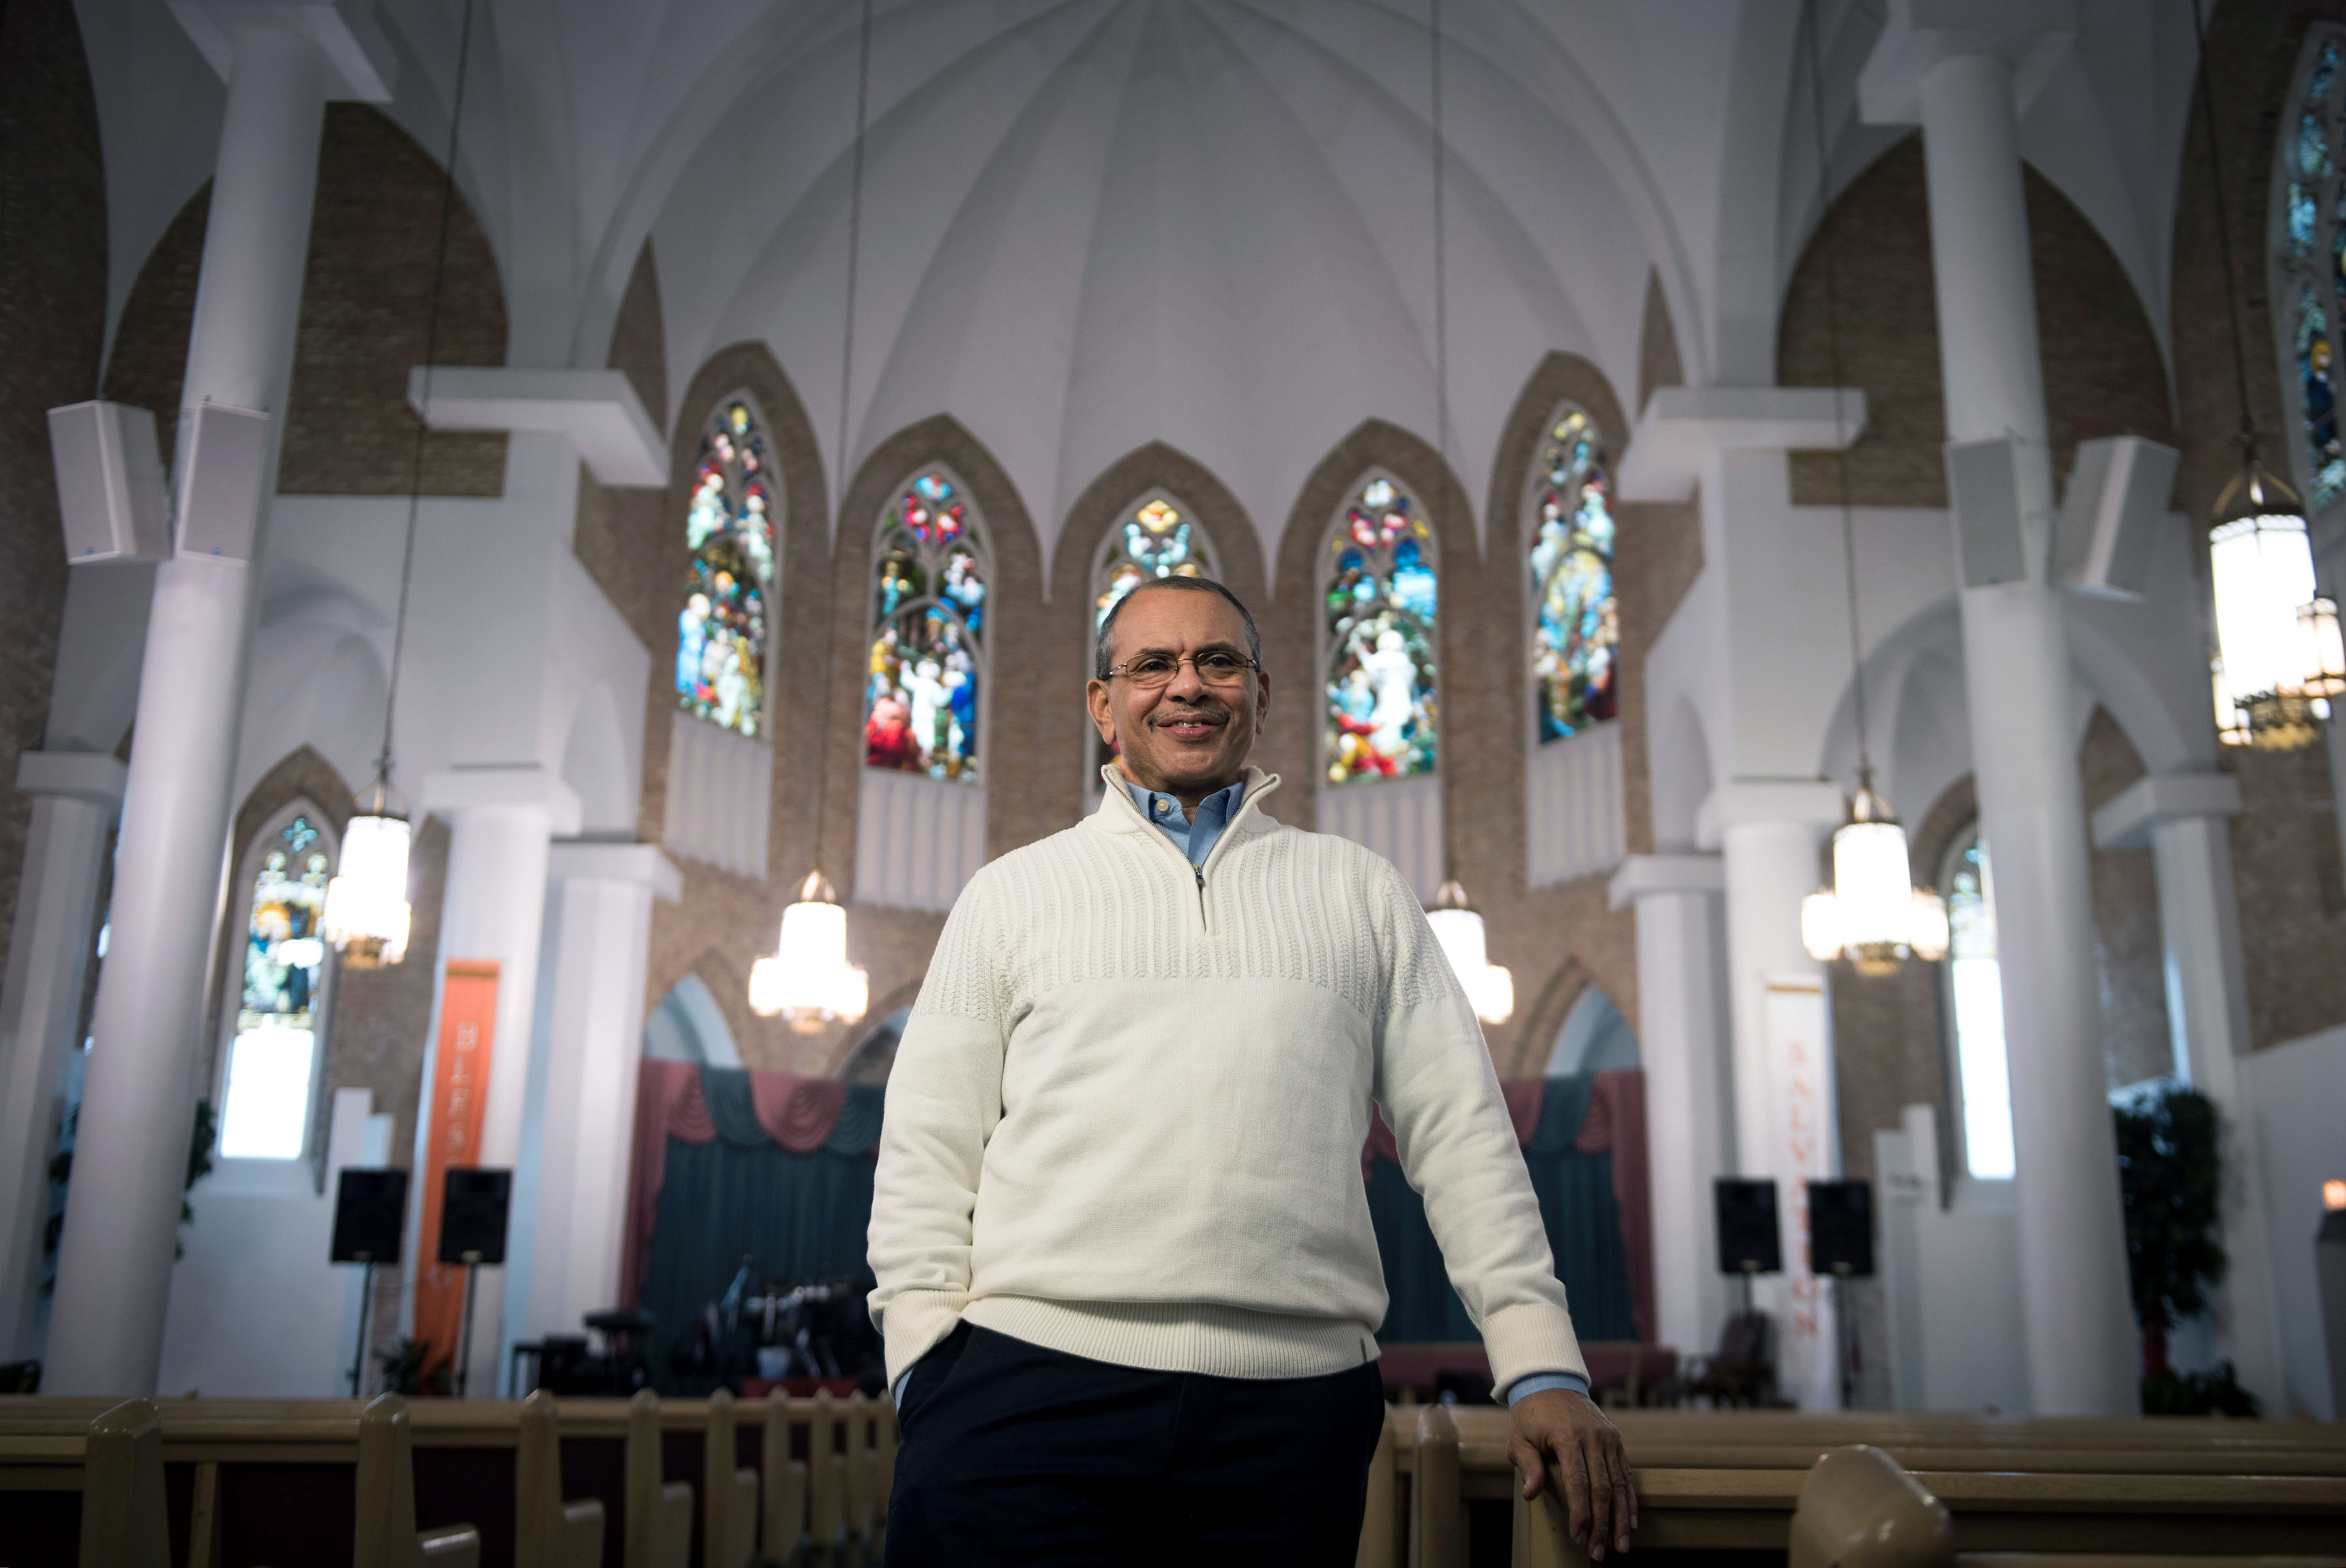 Lawsuit challenges tax perks available to America's pastors